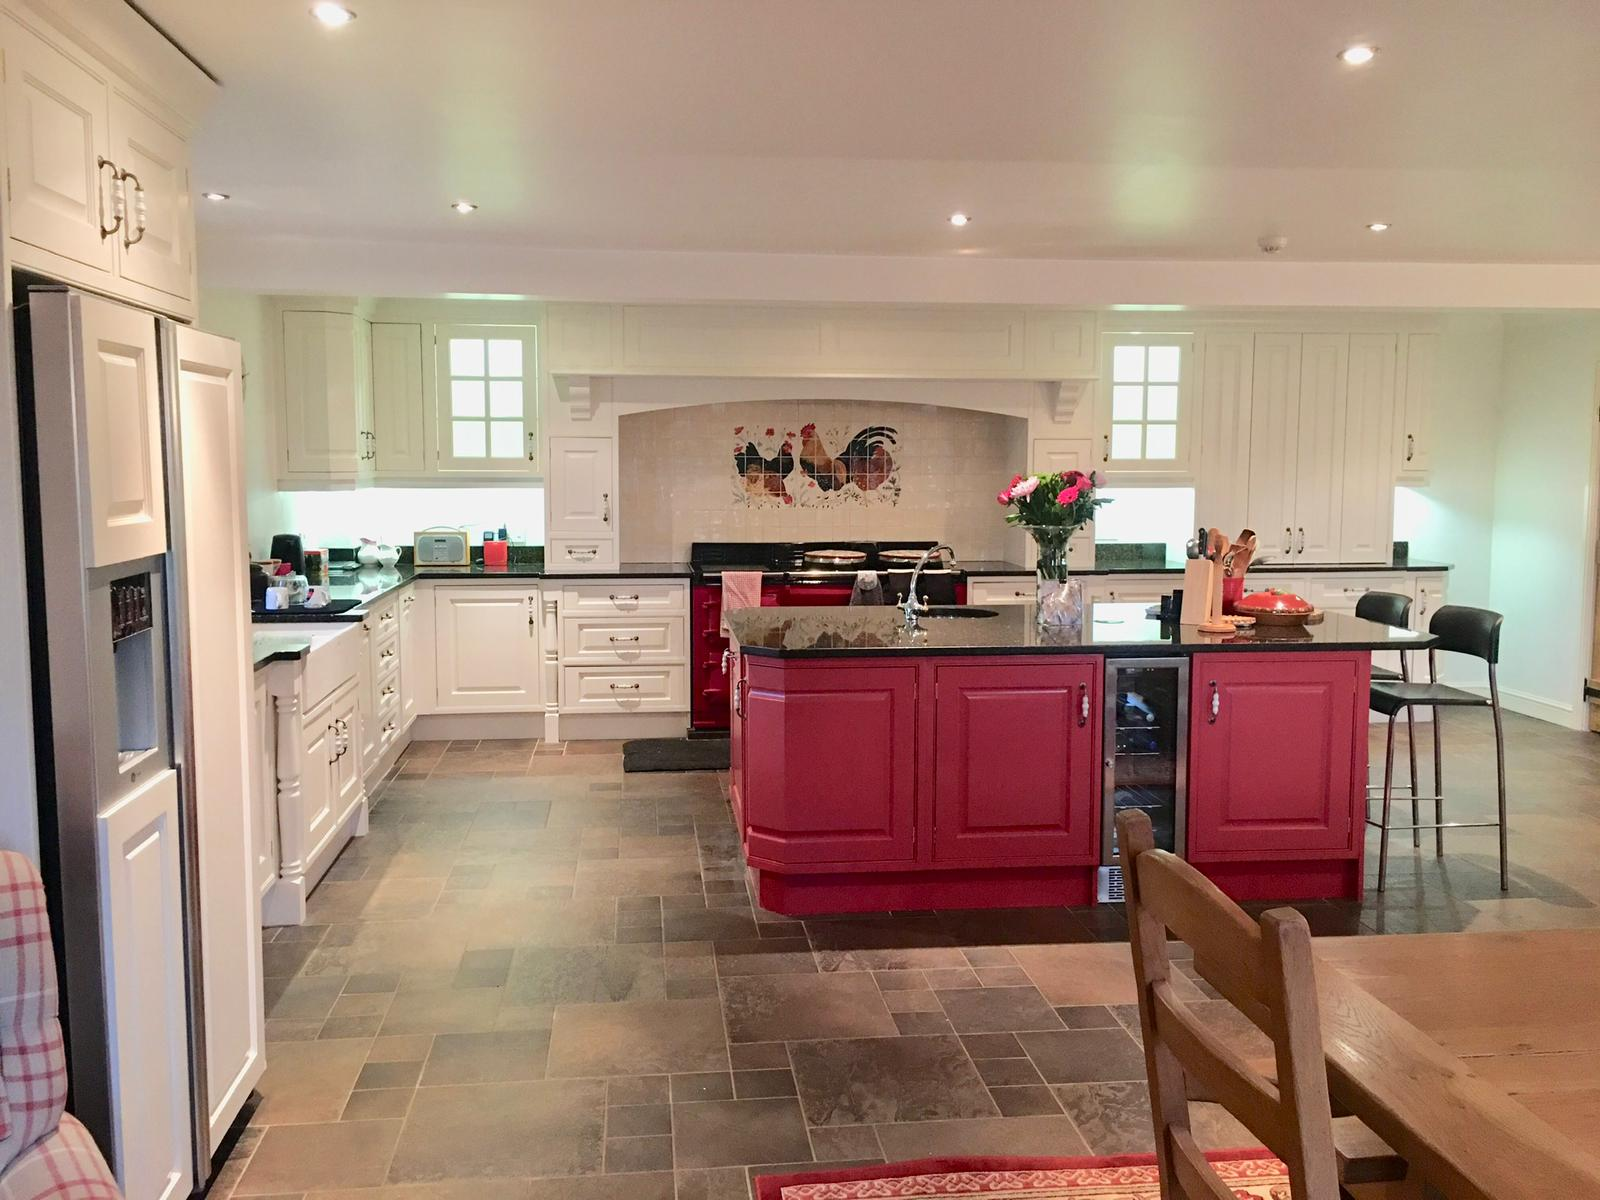 Large bespoke kitchen hand painted in Farrow and Ball pointing on the main cabinets and Farrow and Ball Radicchio Red on the island